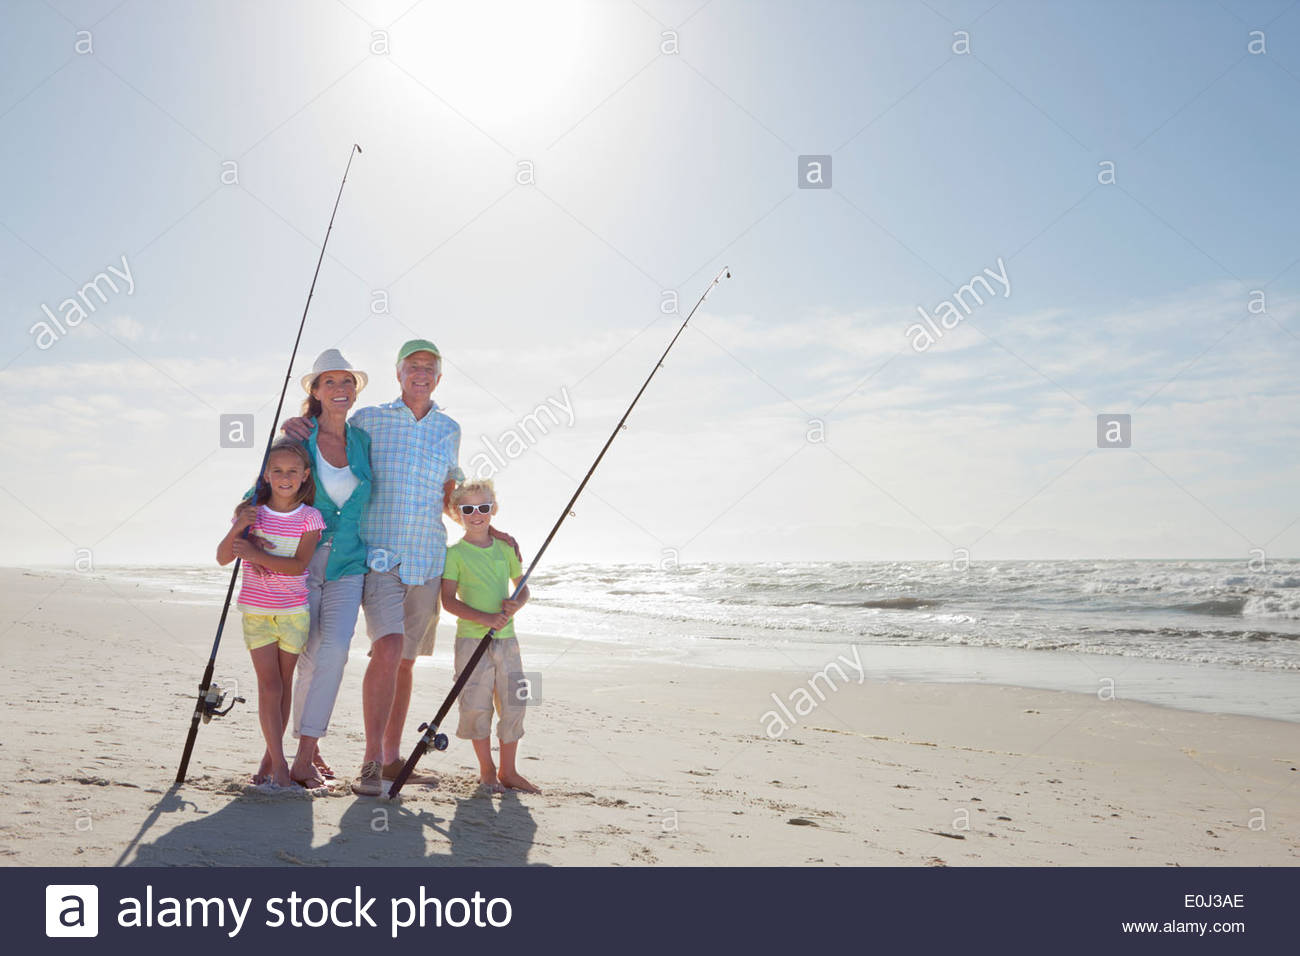 Portrait of grandparents and grandchildren with fishing rods on sunny beach - Stock Image